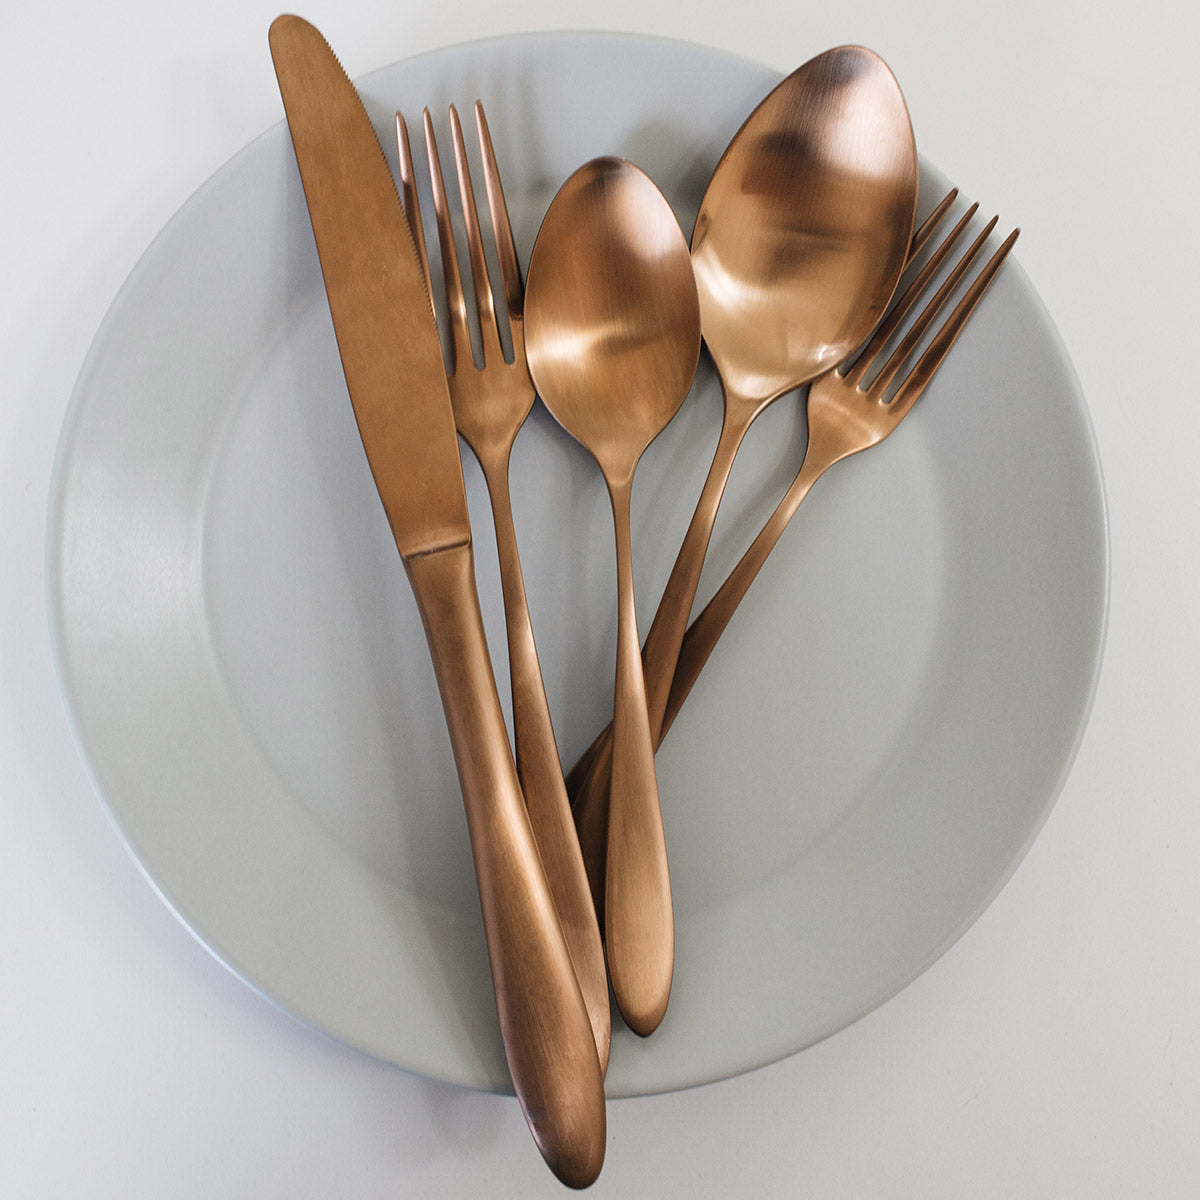 classic flatware set (20 pcs)